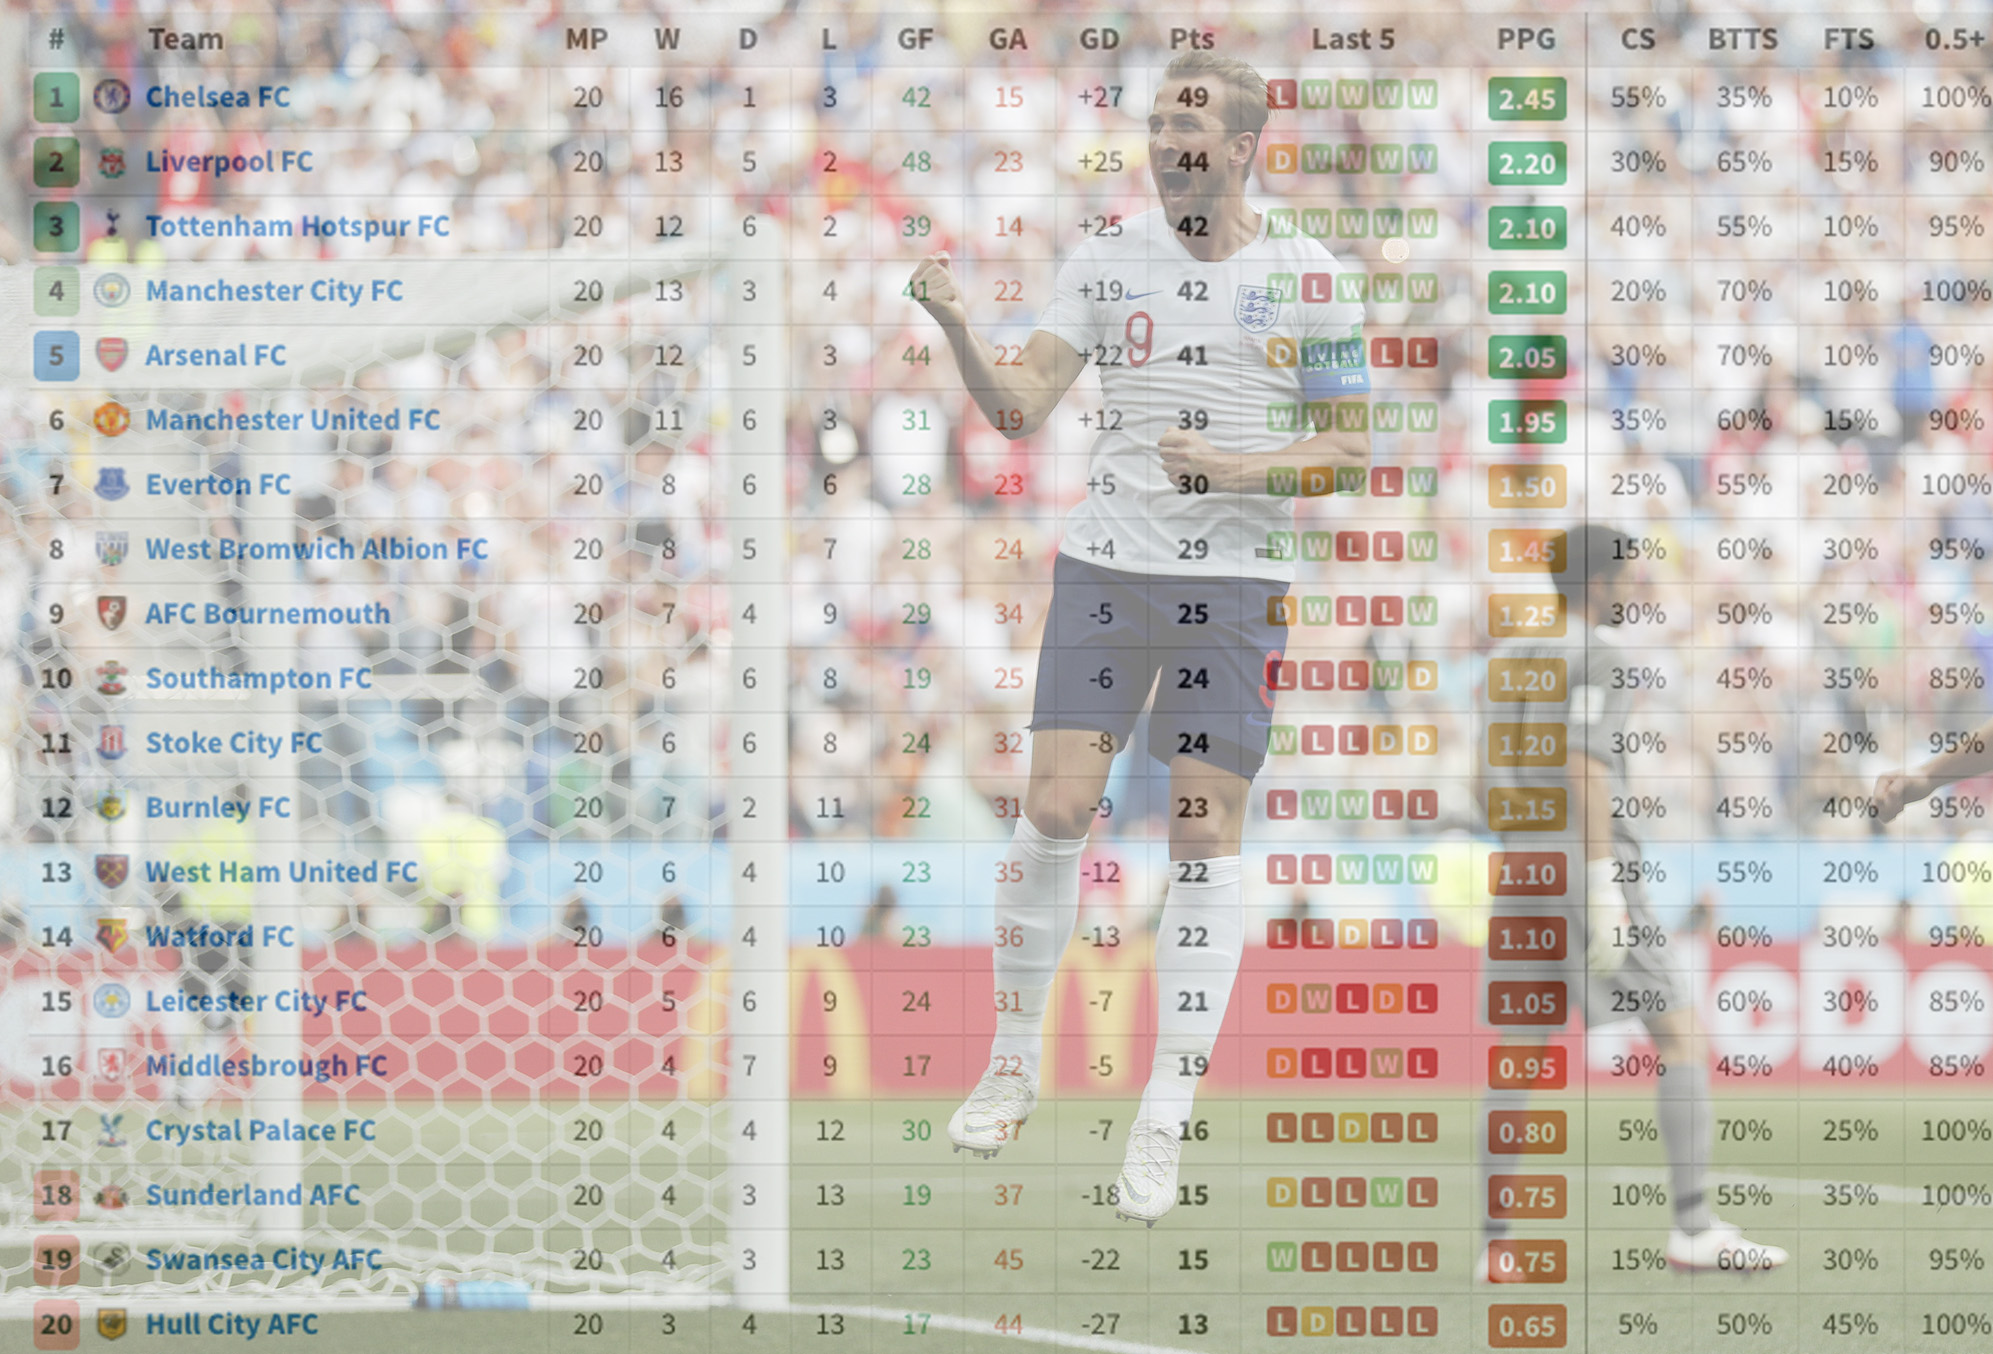 SFU startup uses data to analyze and predict World Cup